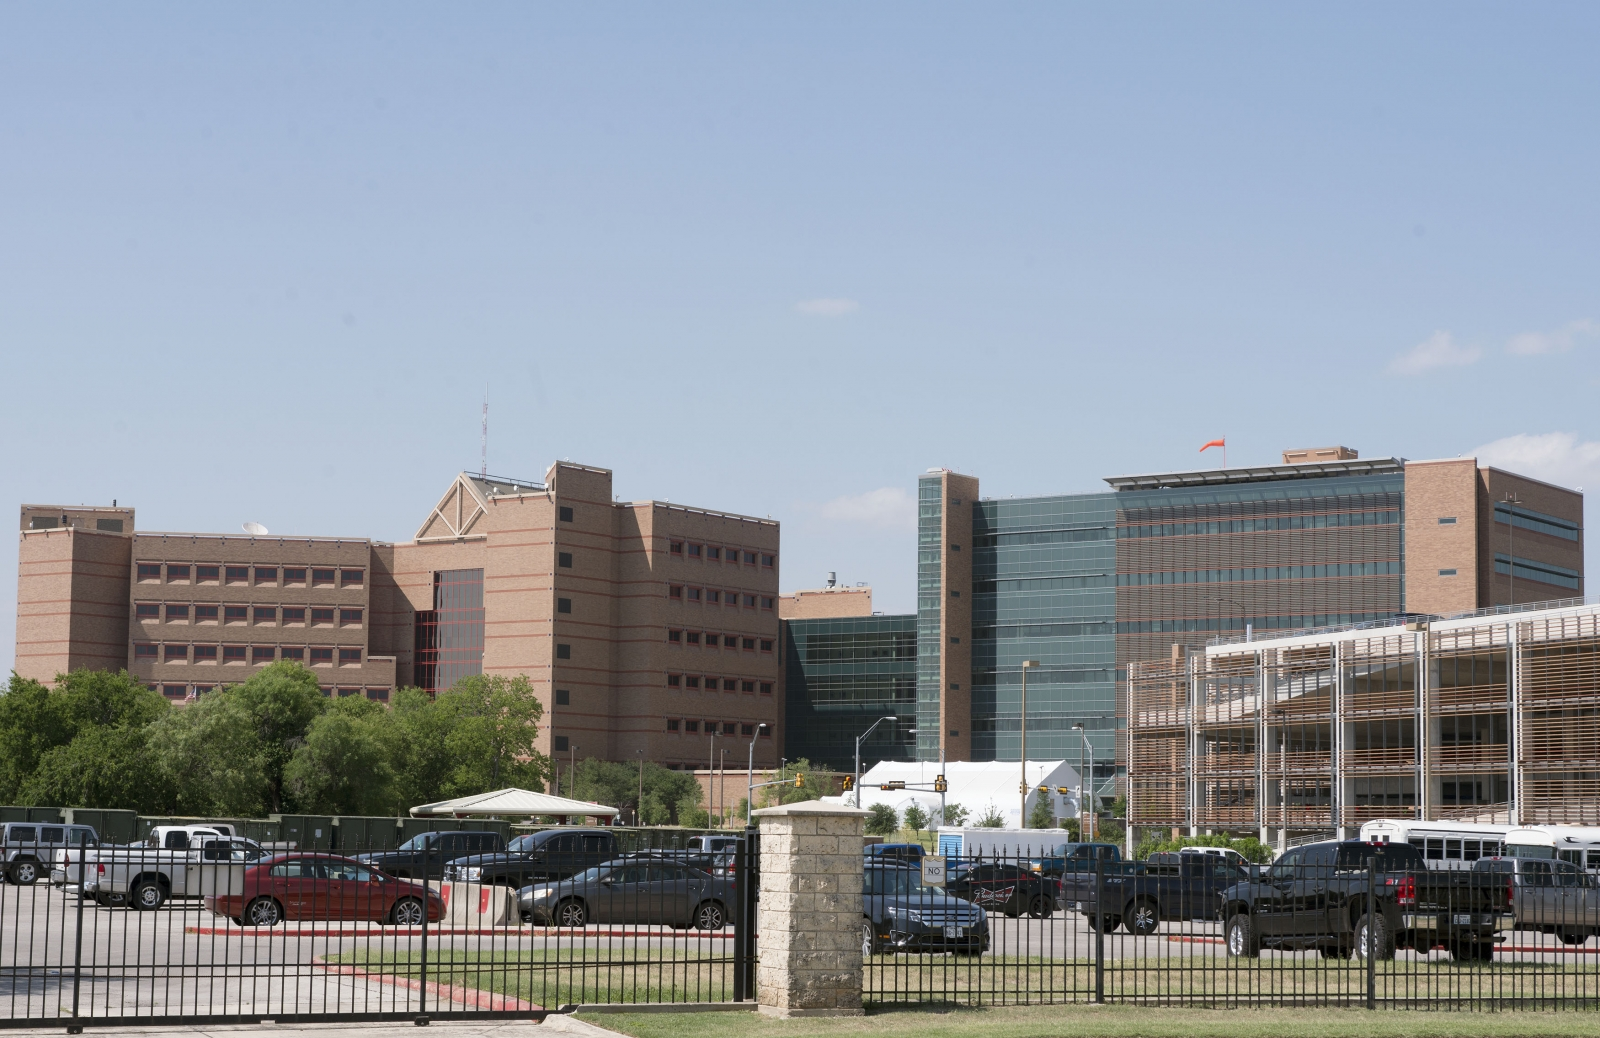 The Brooke Army Medical Center, at Fort Sam Houston in San Antonio, Texas, is pictured June 12, 2014.